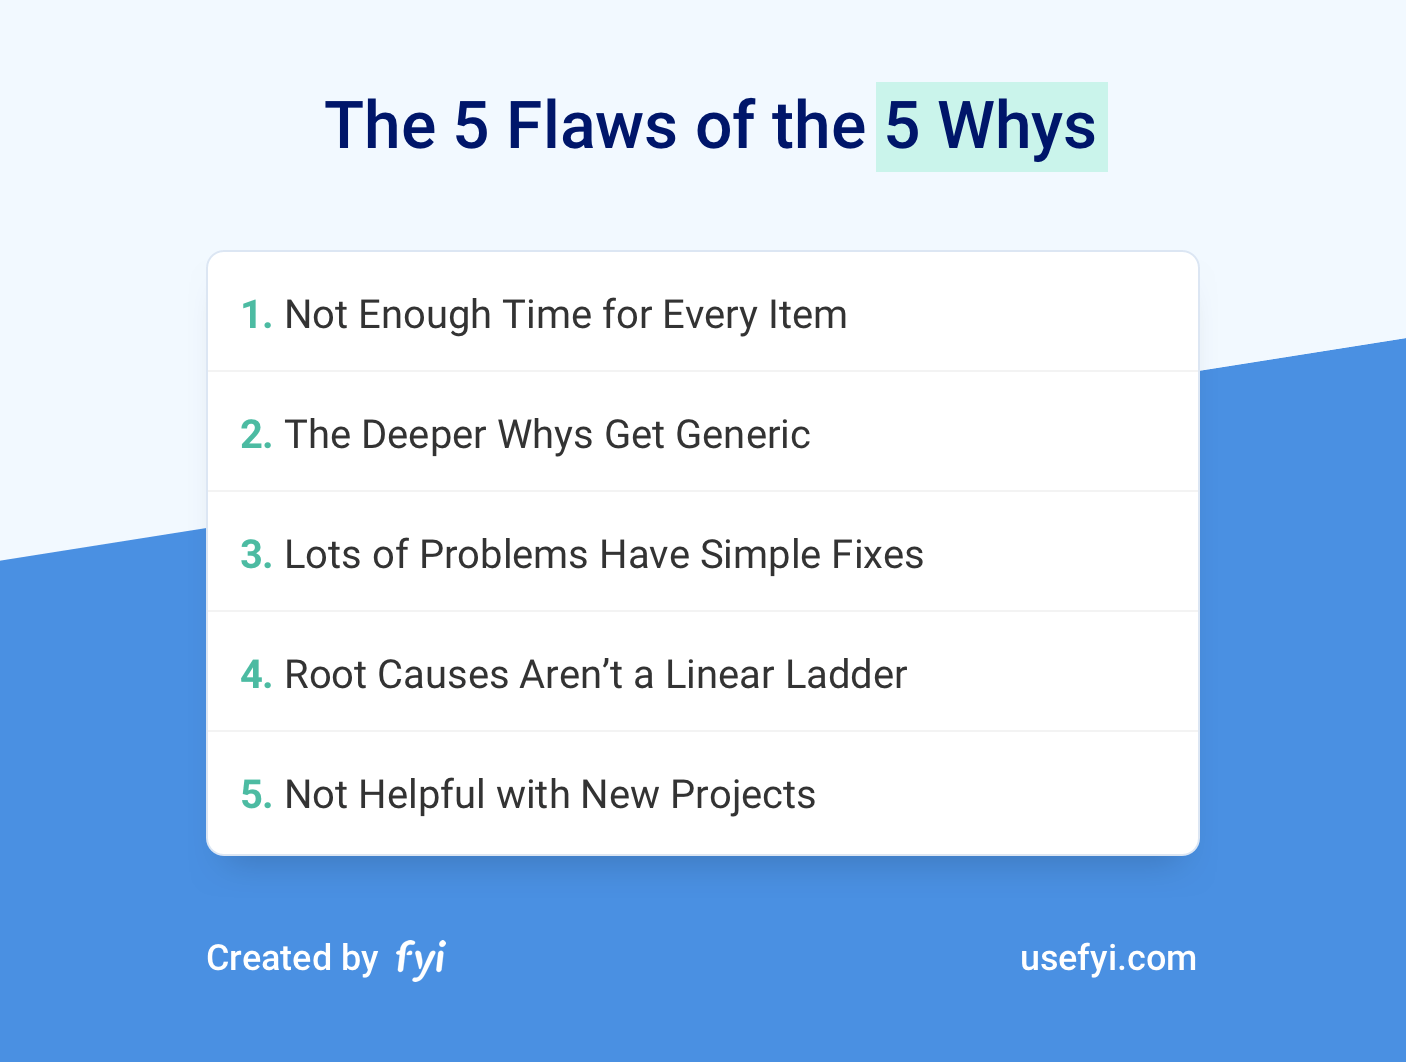 5 Flaws of the 5 Whys